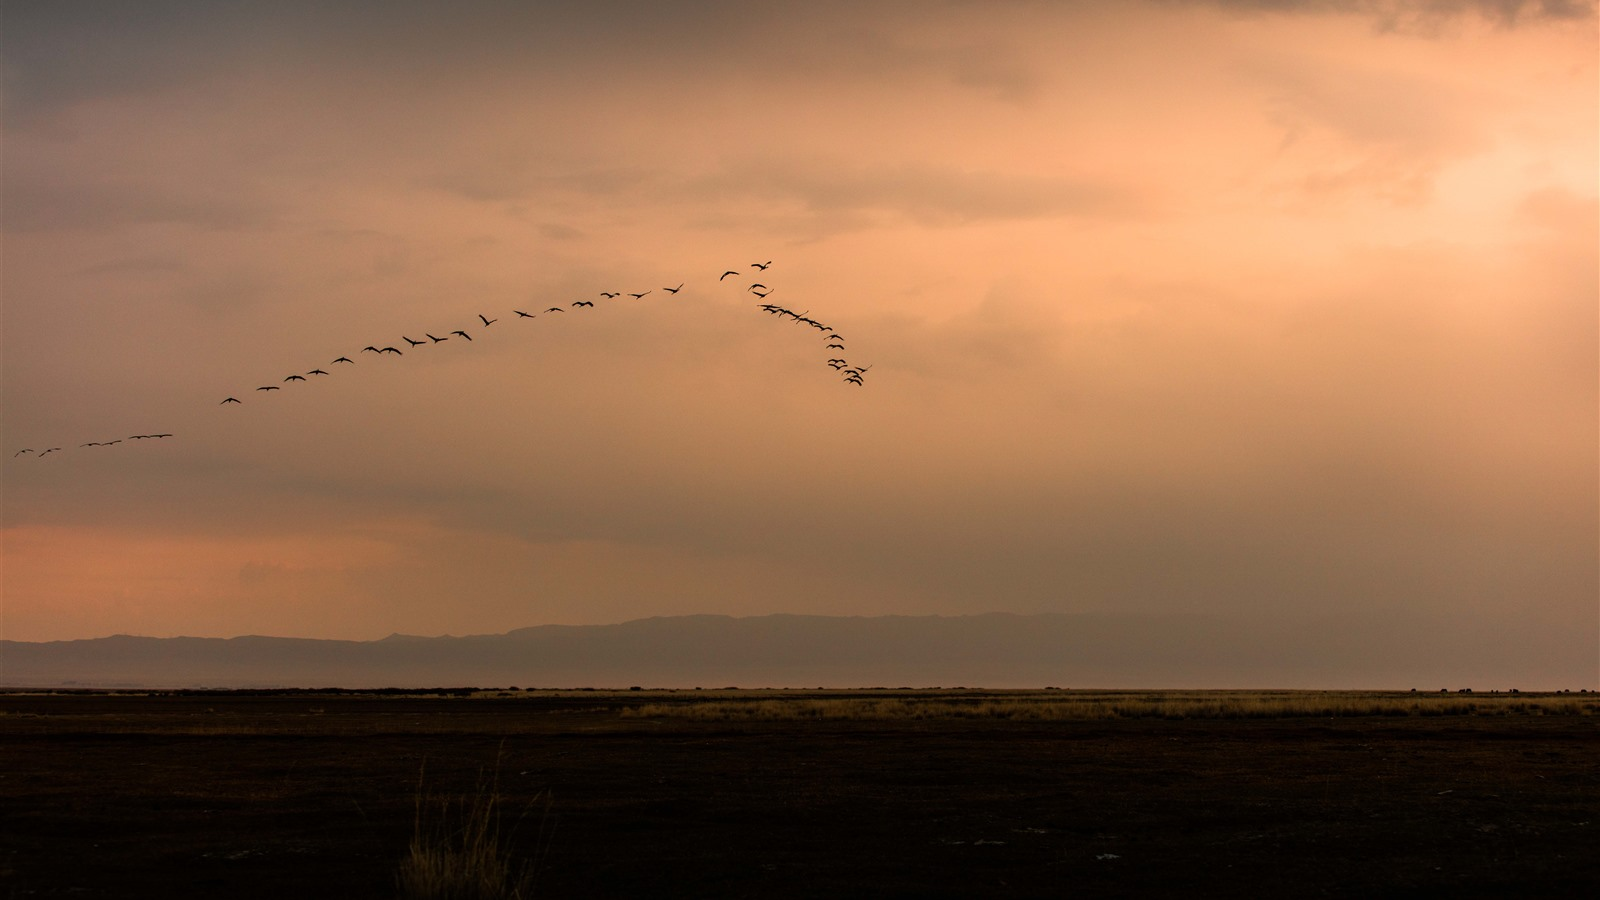 Wallpaper A Group Of Birds Flight In The Sky Sunset 7680x4320 Uhd 8k Picture Image